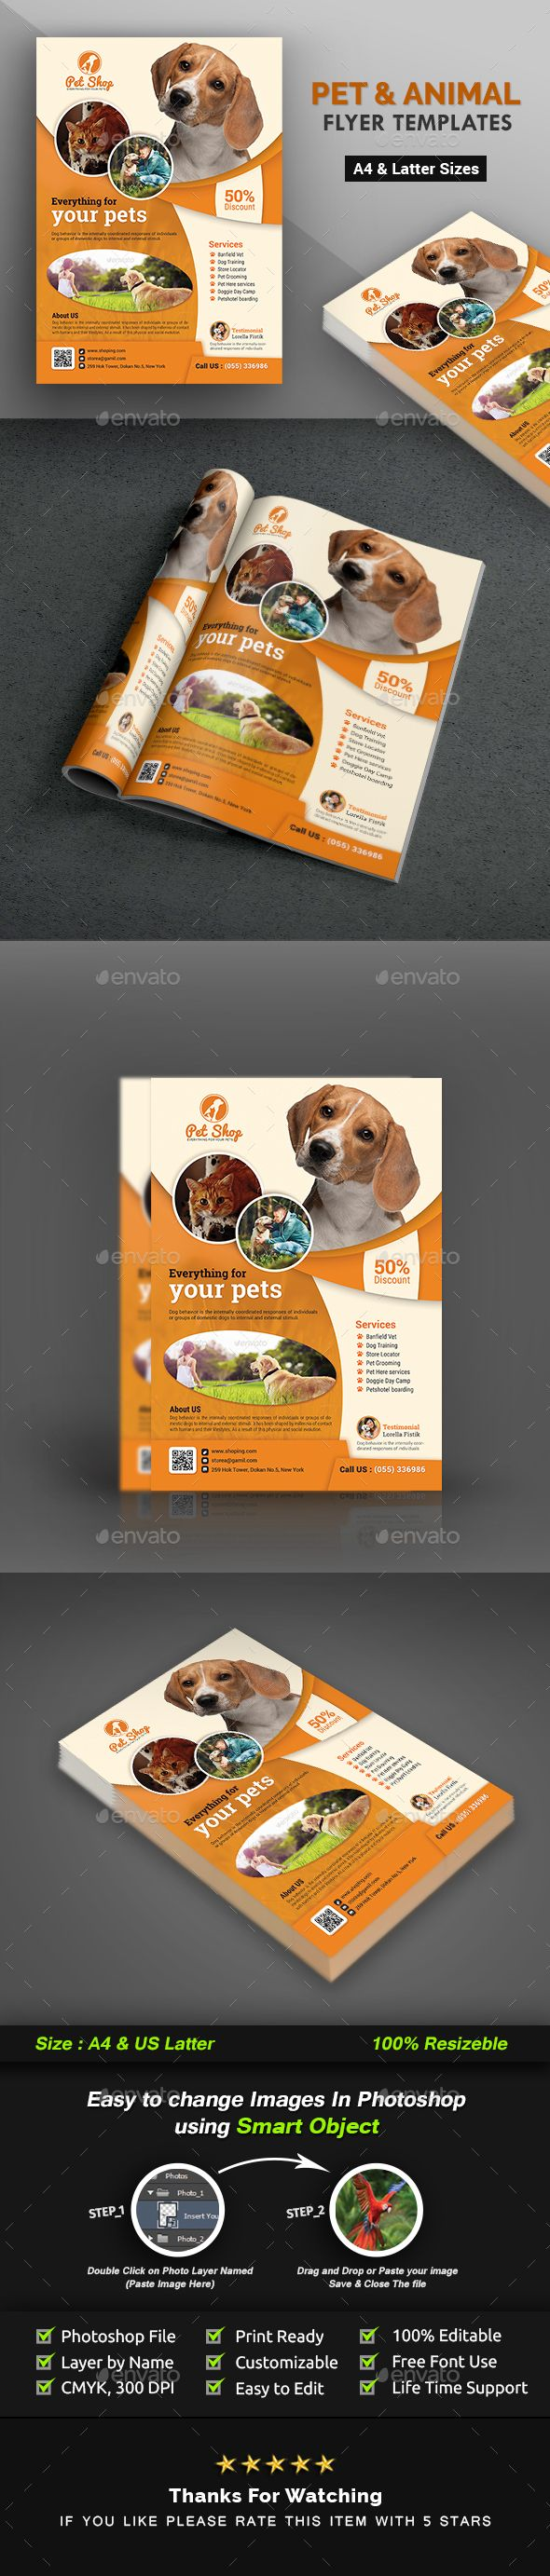 Pet Flyer | Animal Flyer Templates | Flyer template, Template and ...